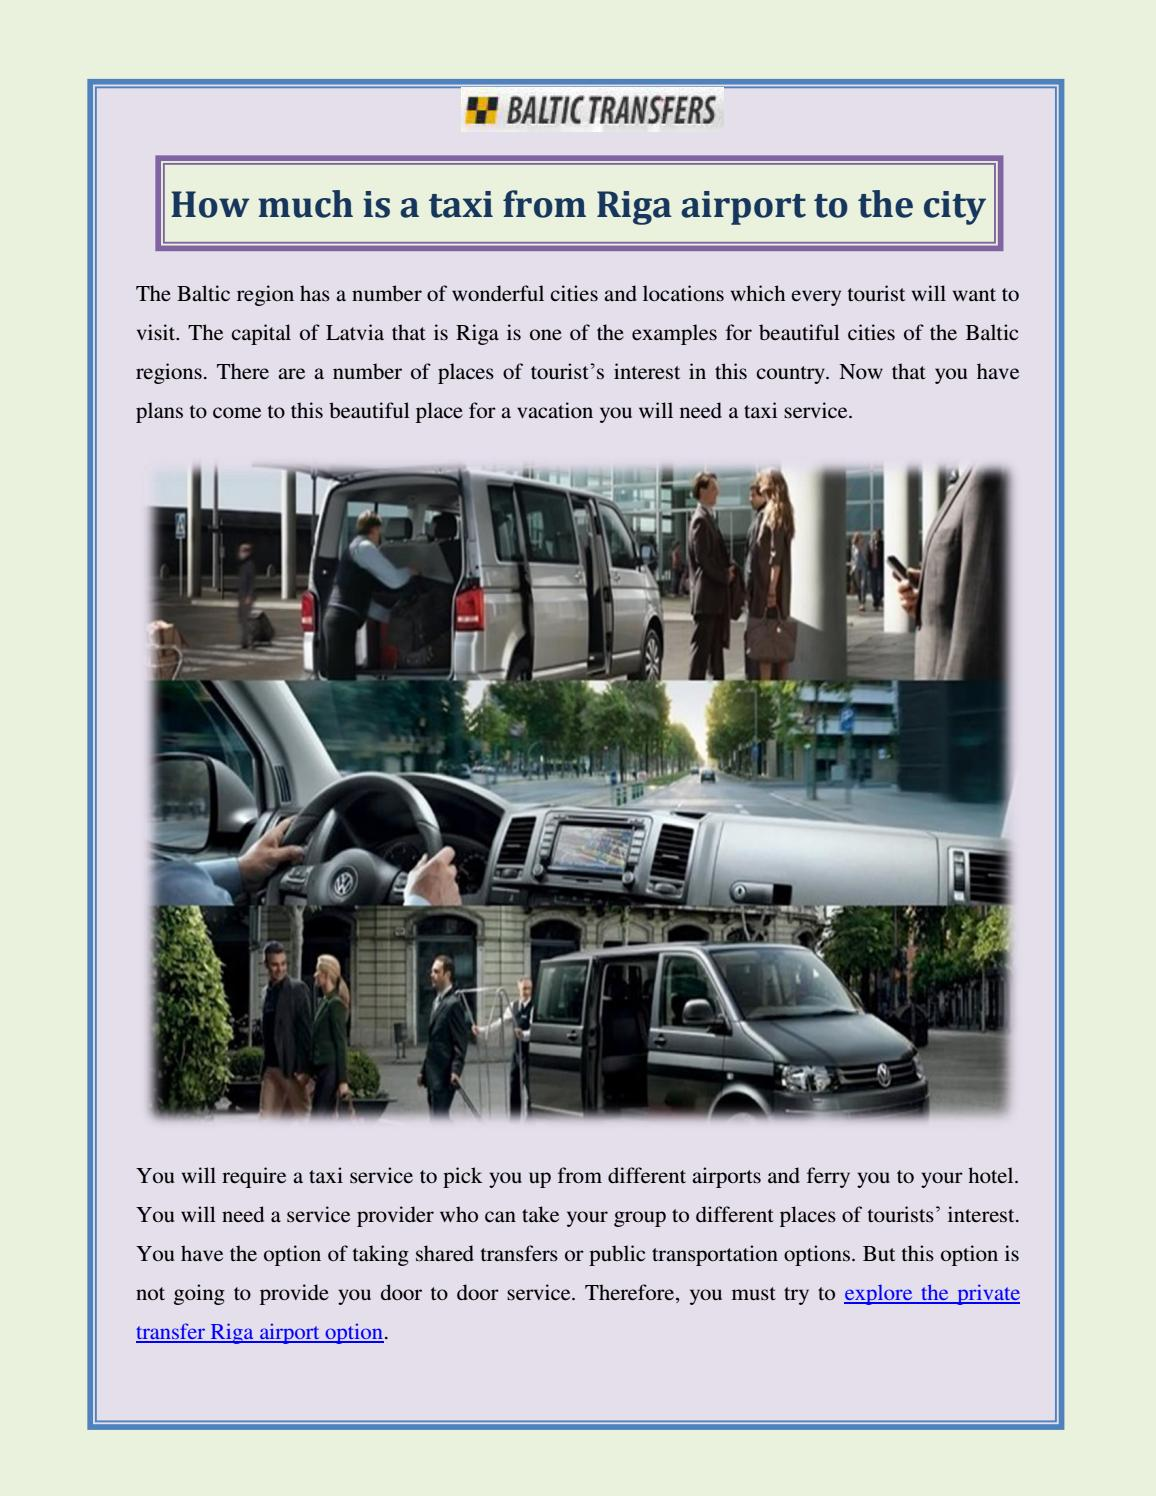 How much is a taxi from Riga airport to the city by Baltic Transfers